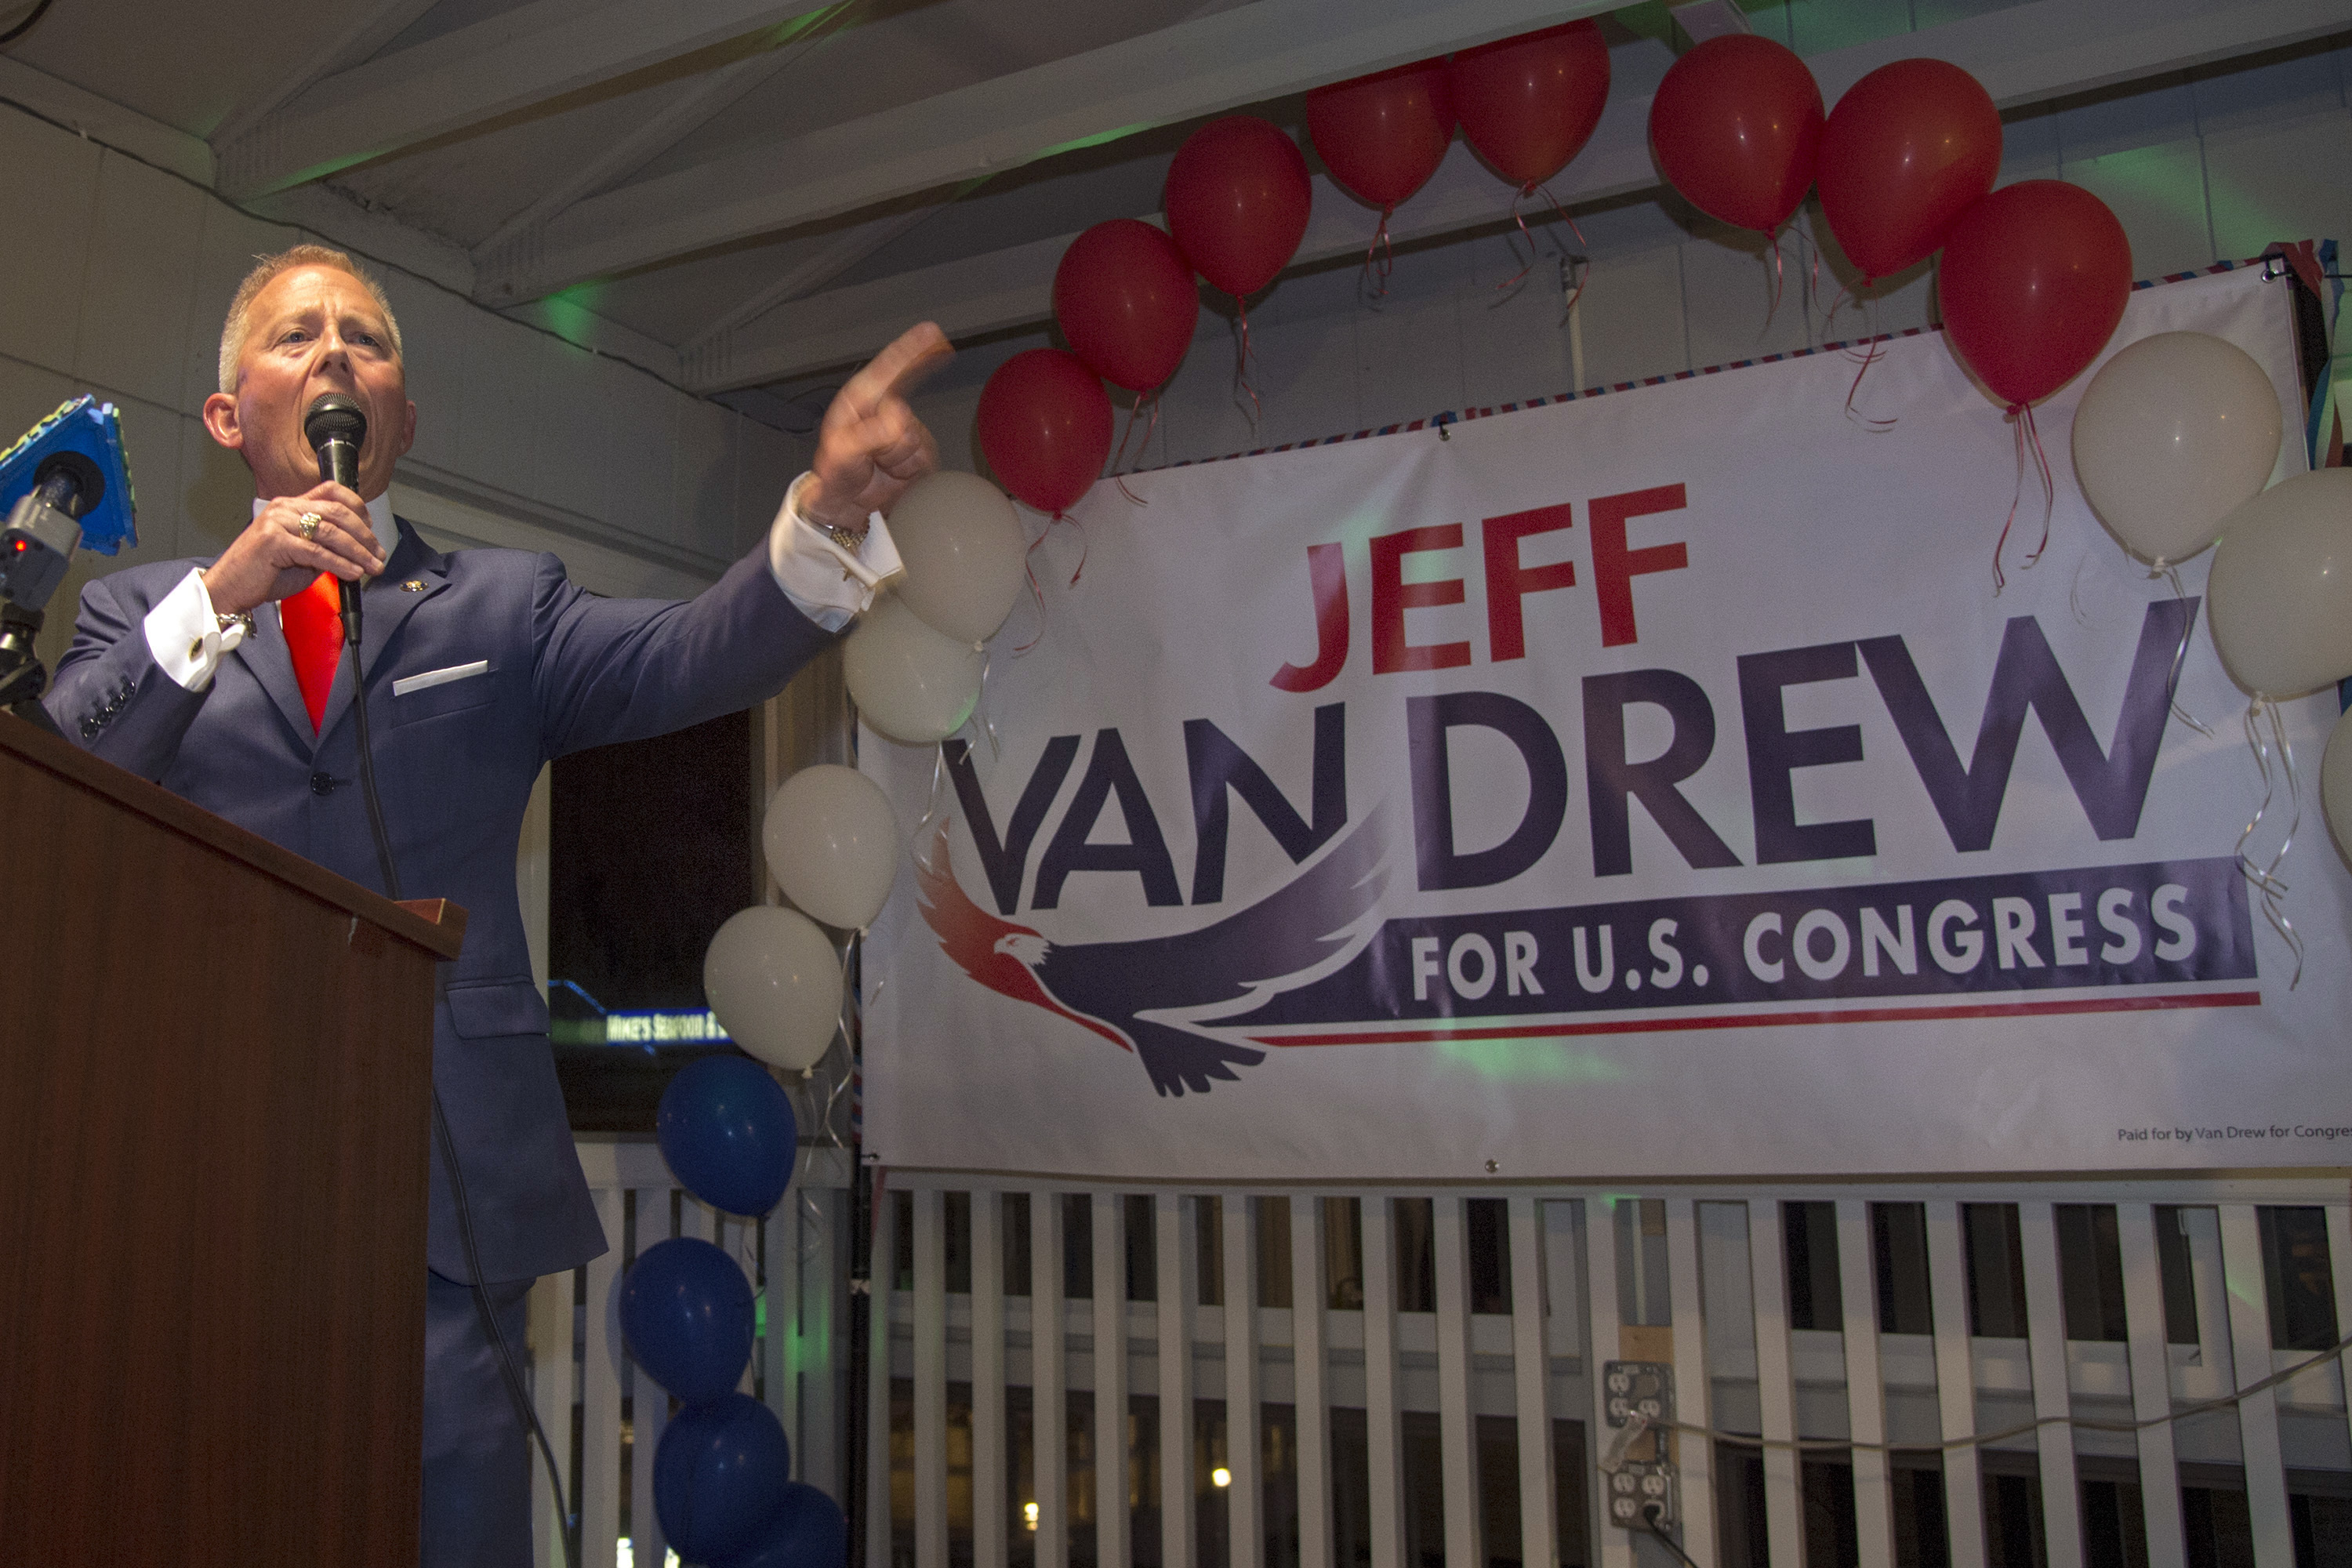 State Senator Jeff Van Drew makes his acceptance speech as the Democratic primary winner in New Jersey´s 2nd Congressional District.